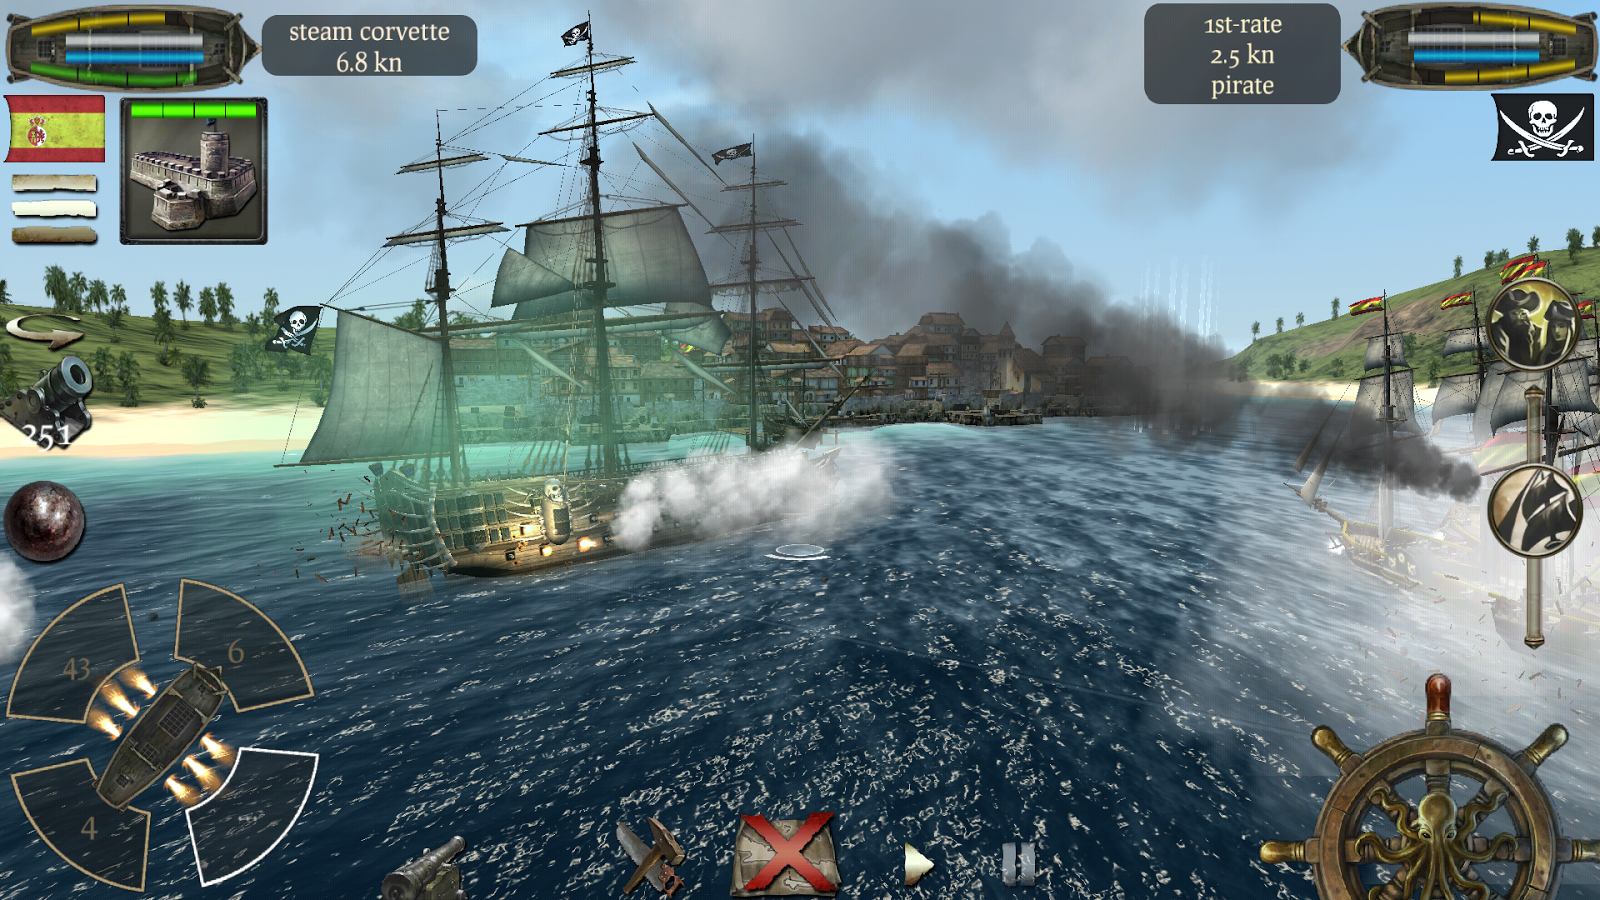 The Pirate: Plague of the Dead Screenshot 7